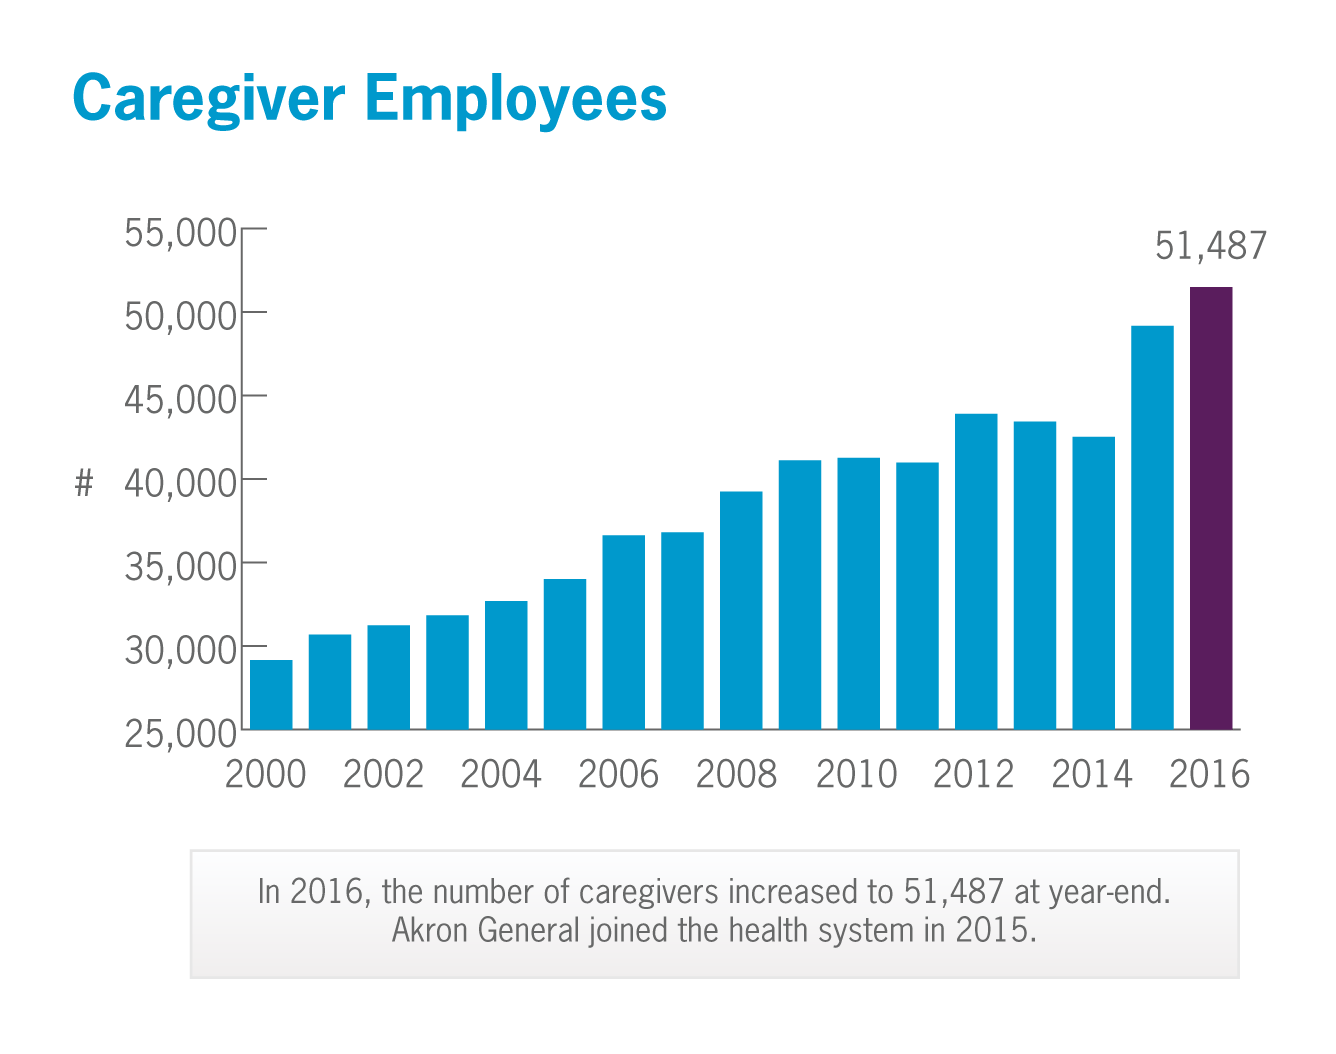 Caregiver Employees